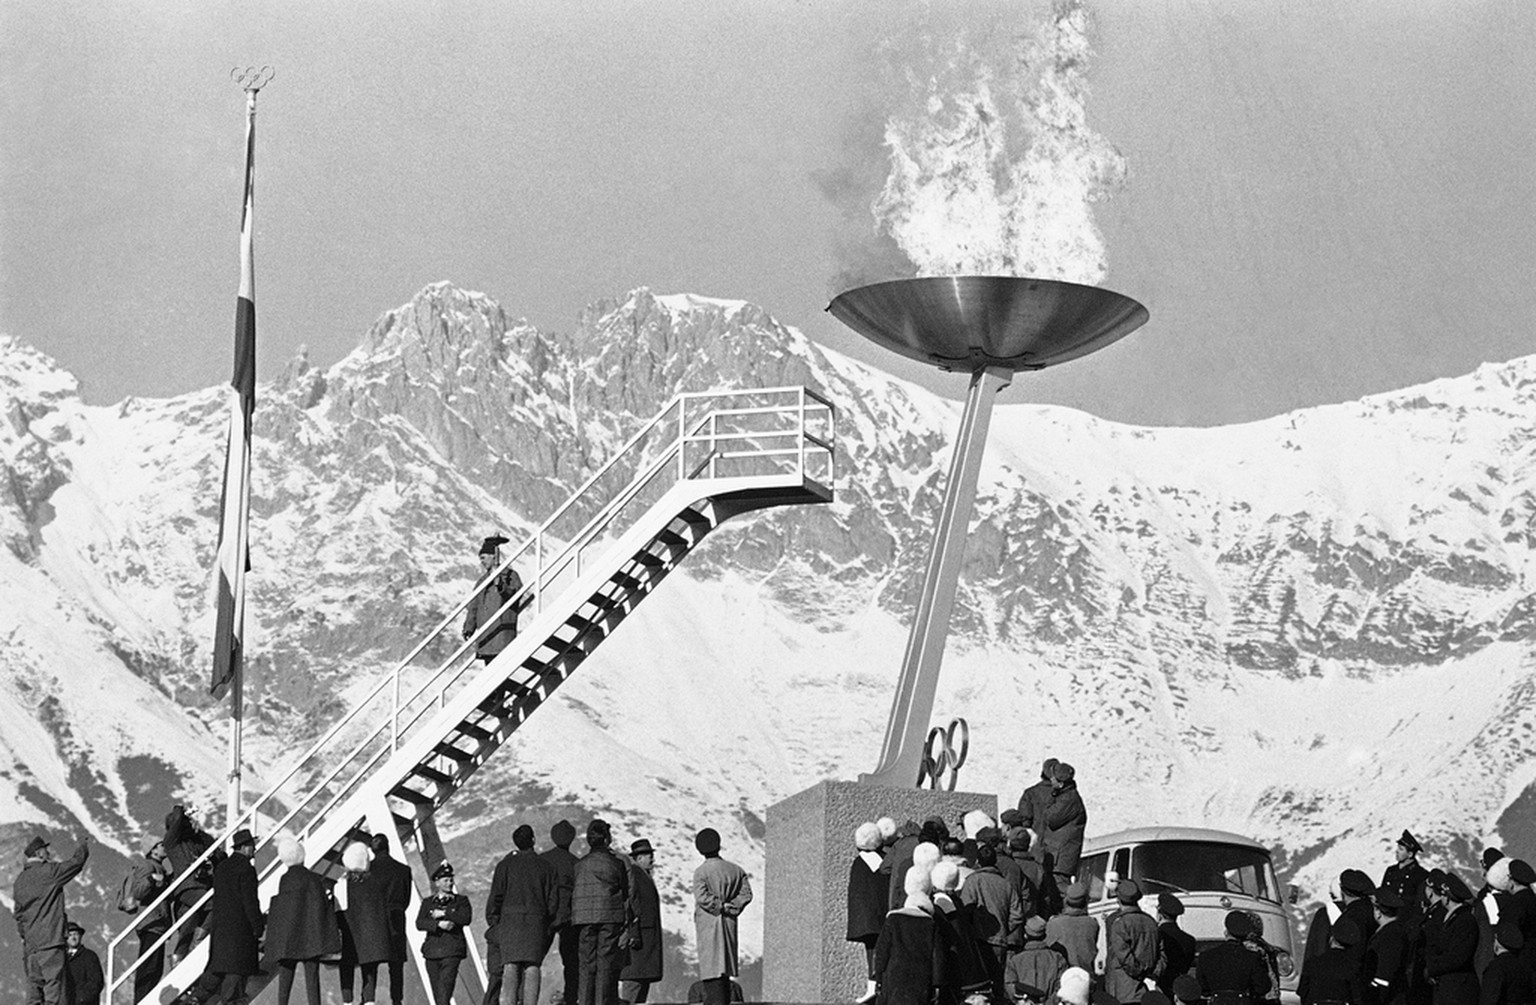 "Flames and smoke soar up with a ""whoosh"" as the Olympic flame is lit at the top of the Olympic Stadium at Innsbruck, Austria on Jan. 21, 1964. The lighting was part of the first rehearsal for the opening of the Winter Olympic Games on January 29. Some 1,300 high school students took part in the rehearsal at the Ski Jump Stadium, Imitating Athletes and marching behind the flags of the 35 nations entered in the competition. (AP Photo)"